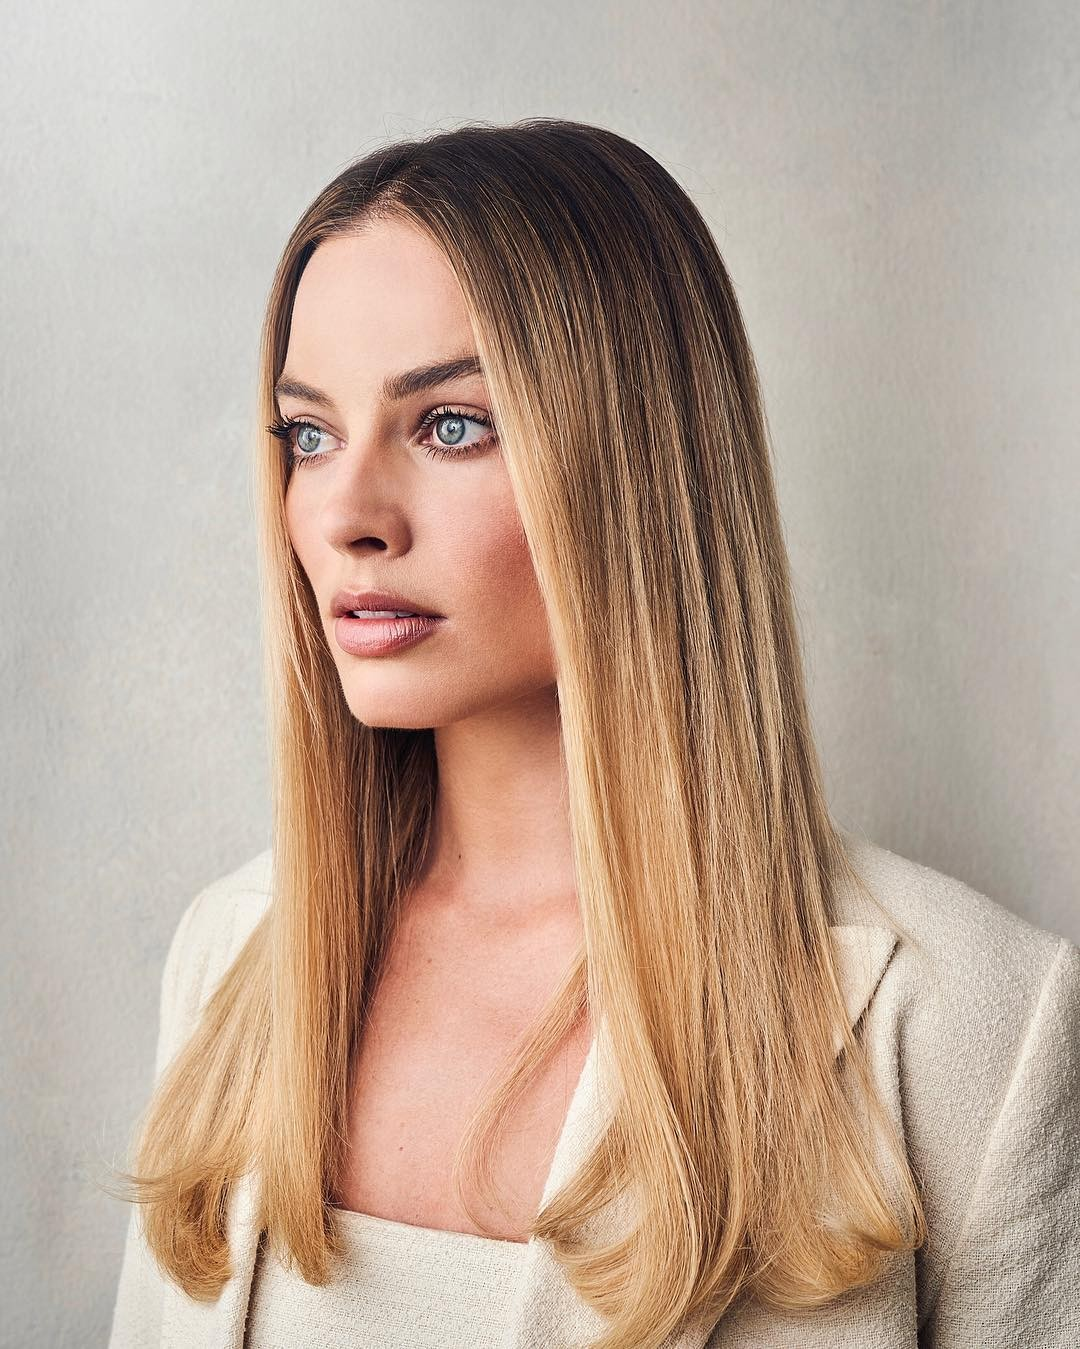 Margot Robbie at 2019 Tribeca Film Festival Portraits, April 2019 1